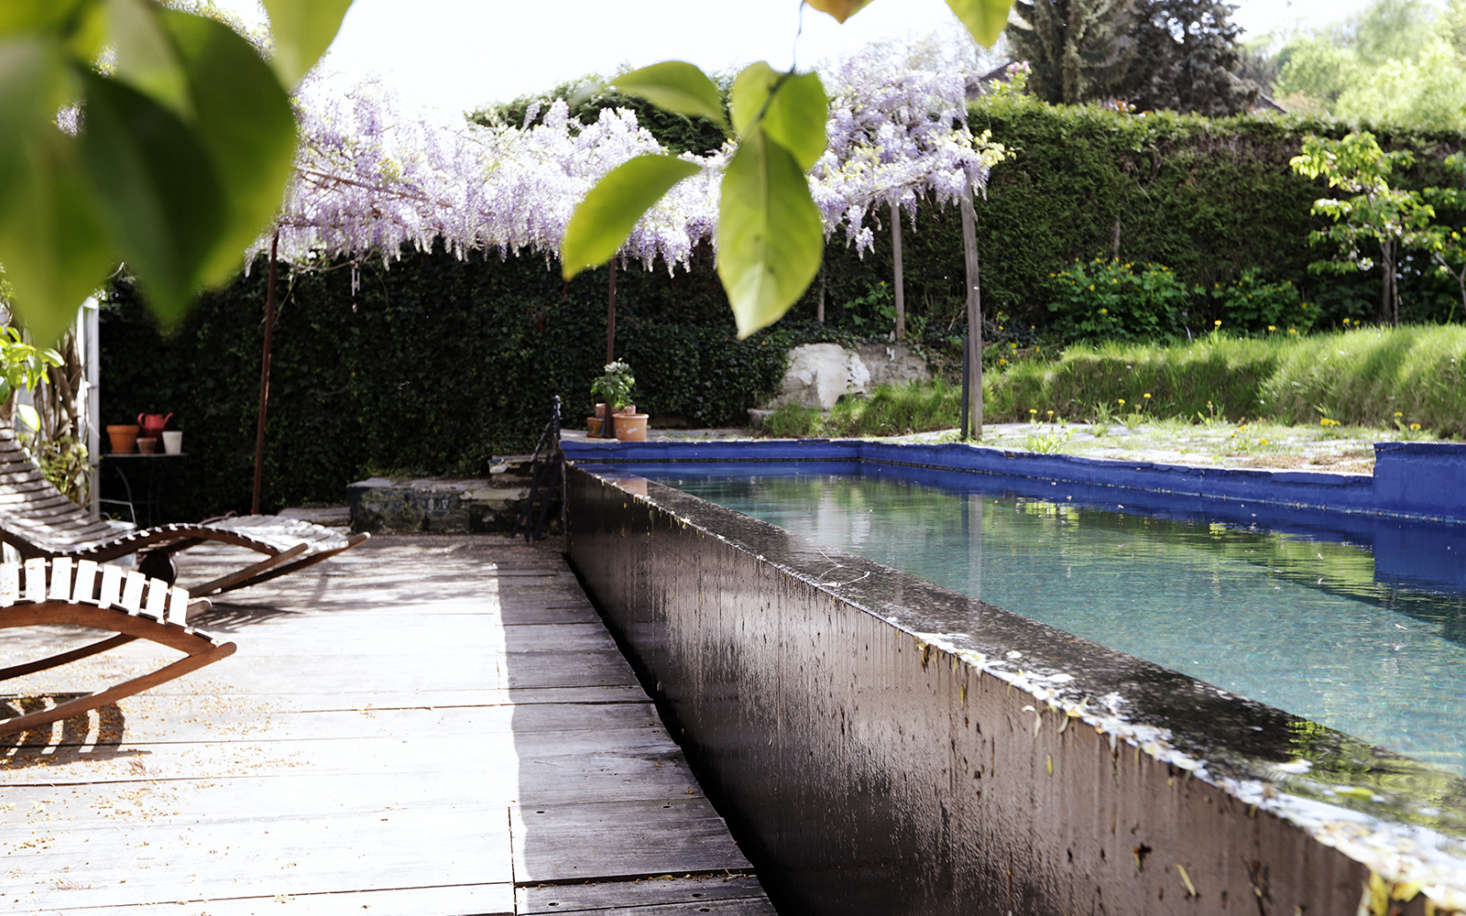 """The pool started as a small pond but ended up morphing into a lap pool. It's made of concrete that Valentin painted blue (""""I change it every year,"""" he says). The garden beyond was created in levels: a stone terrace and wood pergola, the pool, and the grass field beyond."""